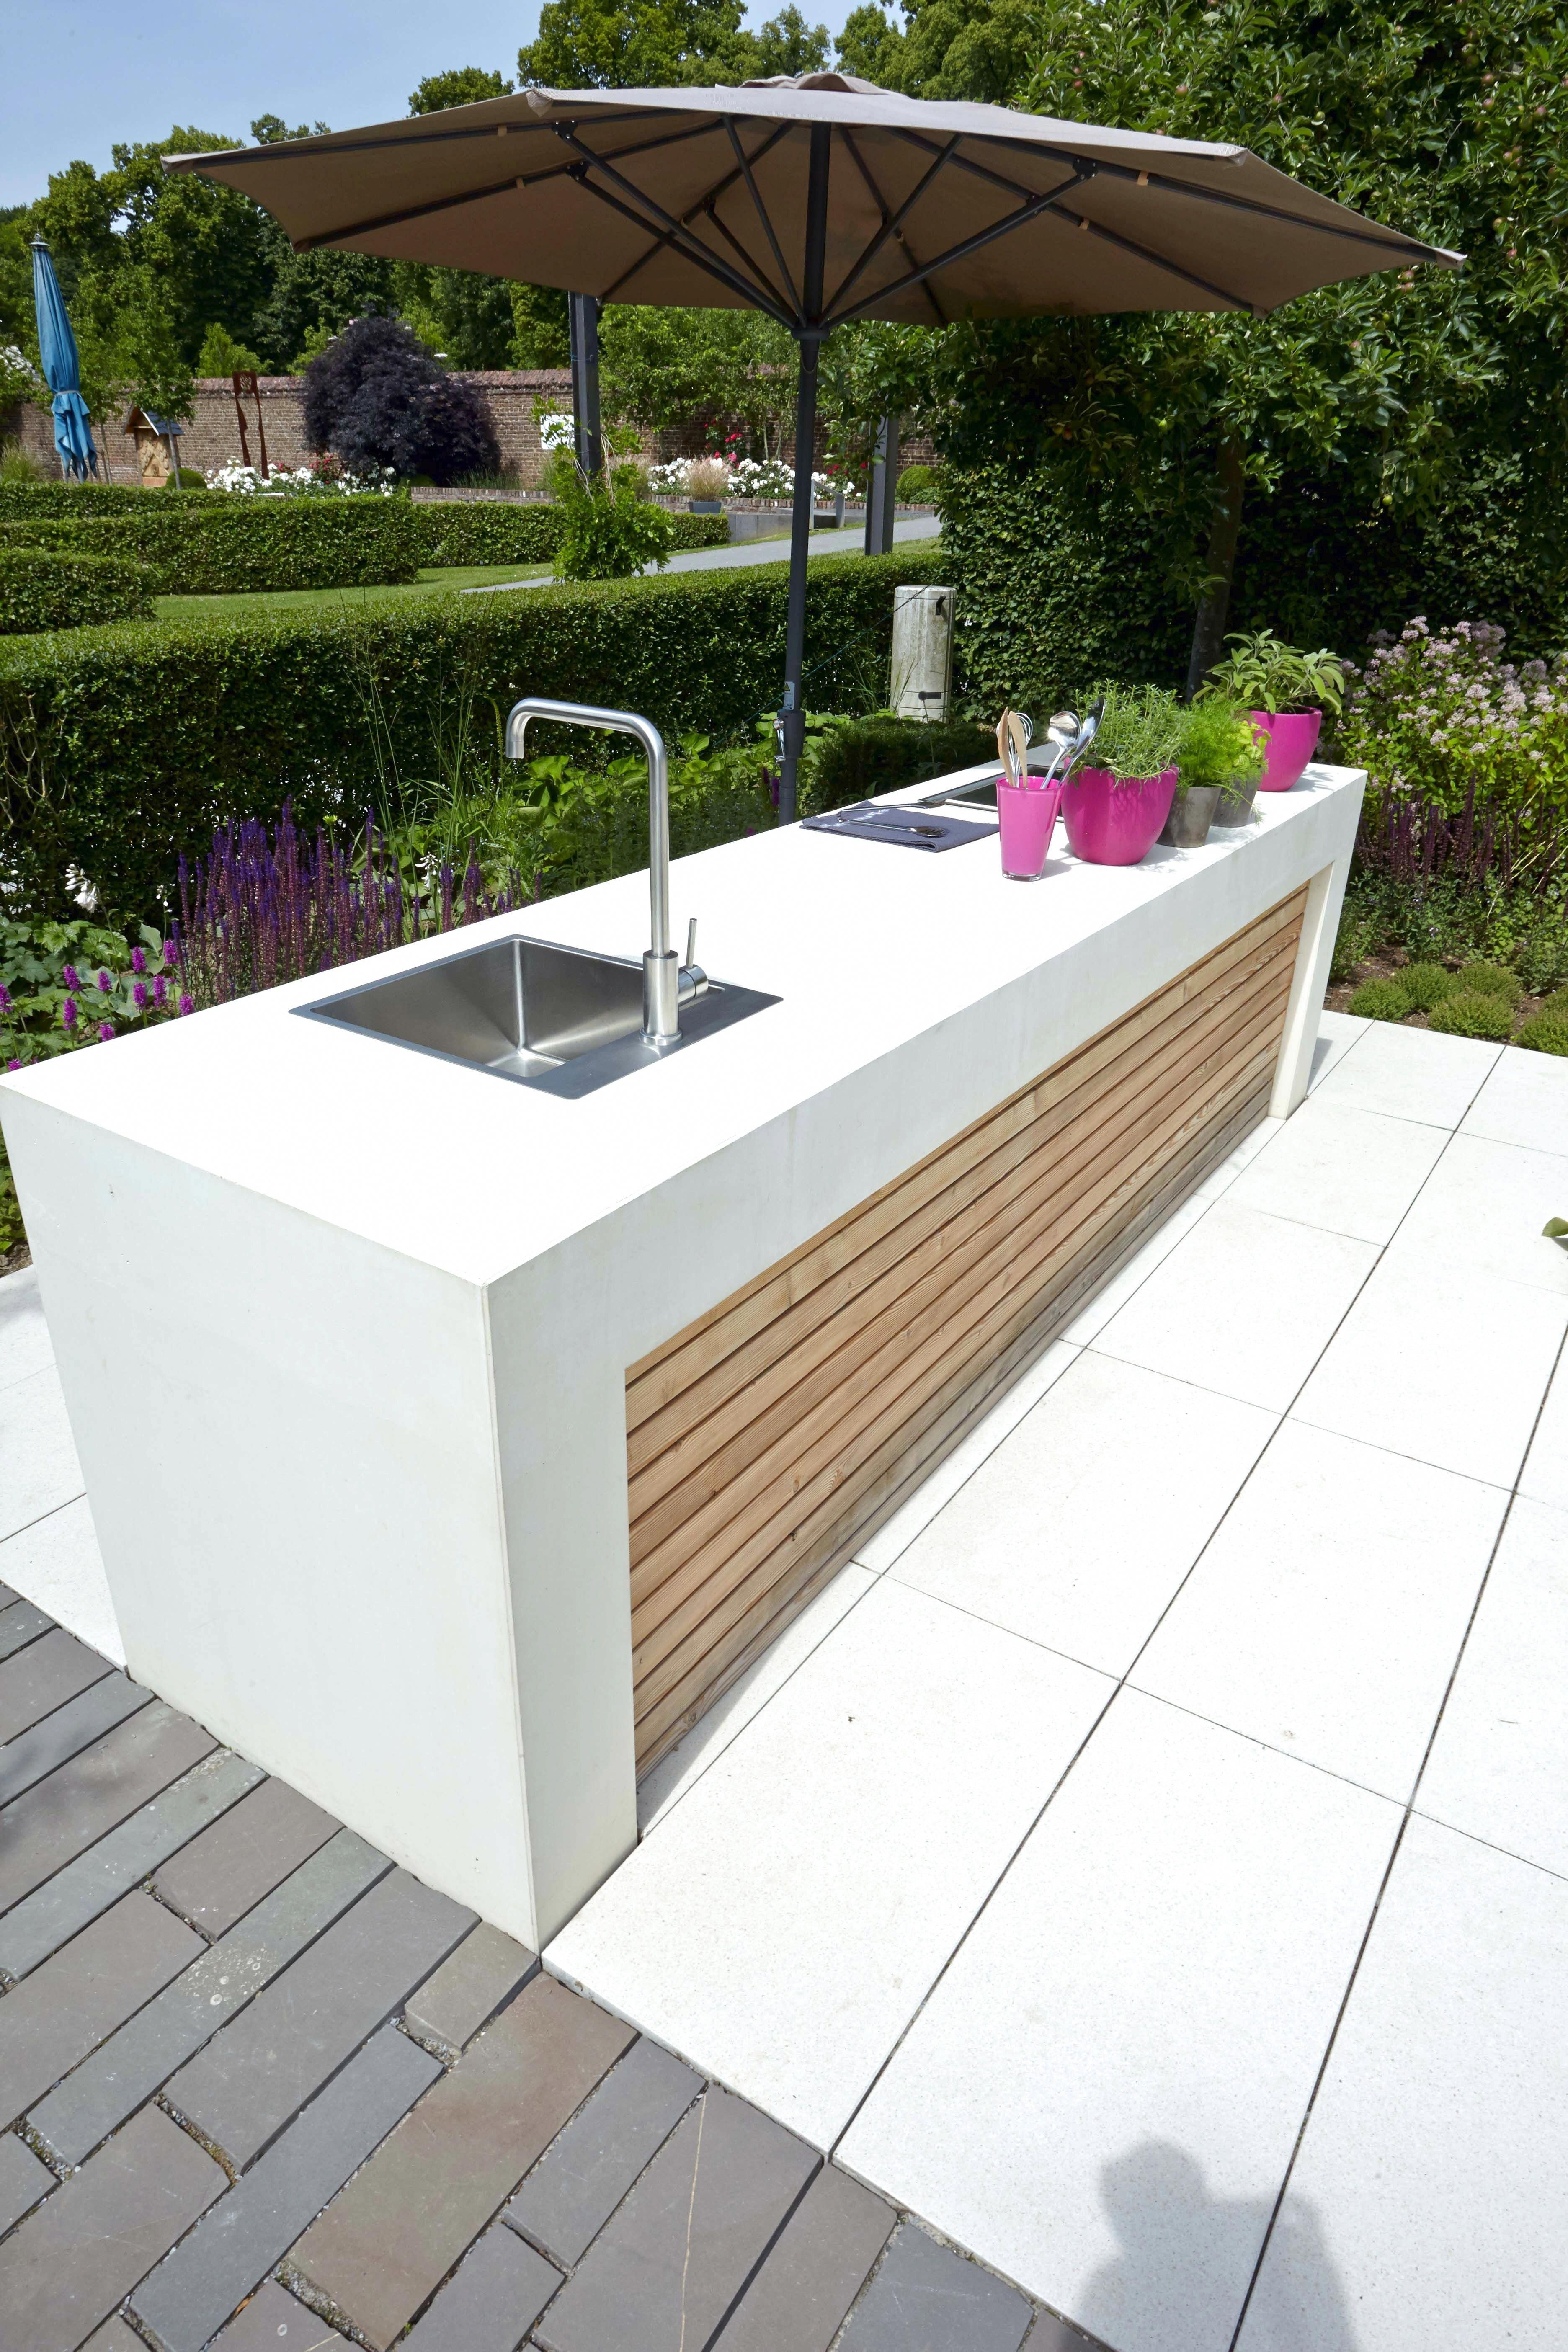 Discover Additional Details On Outdoor Kitchen Designs Layout